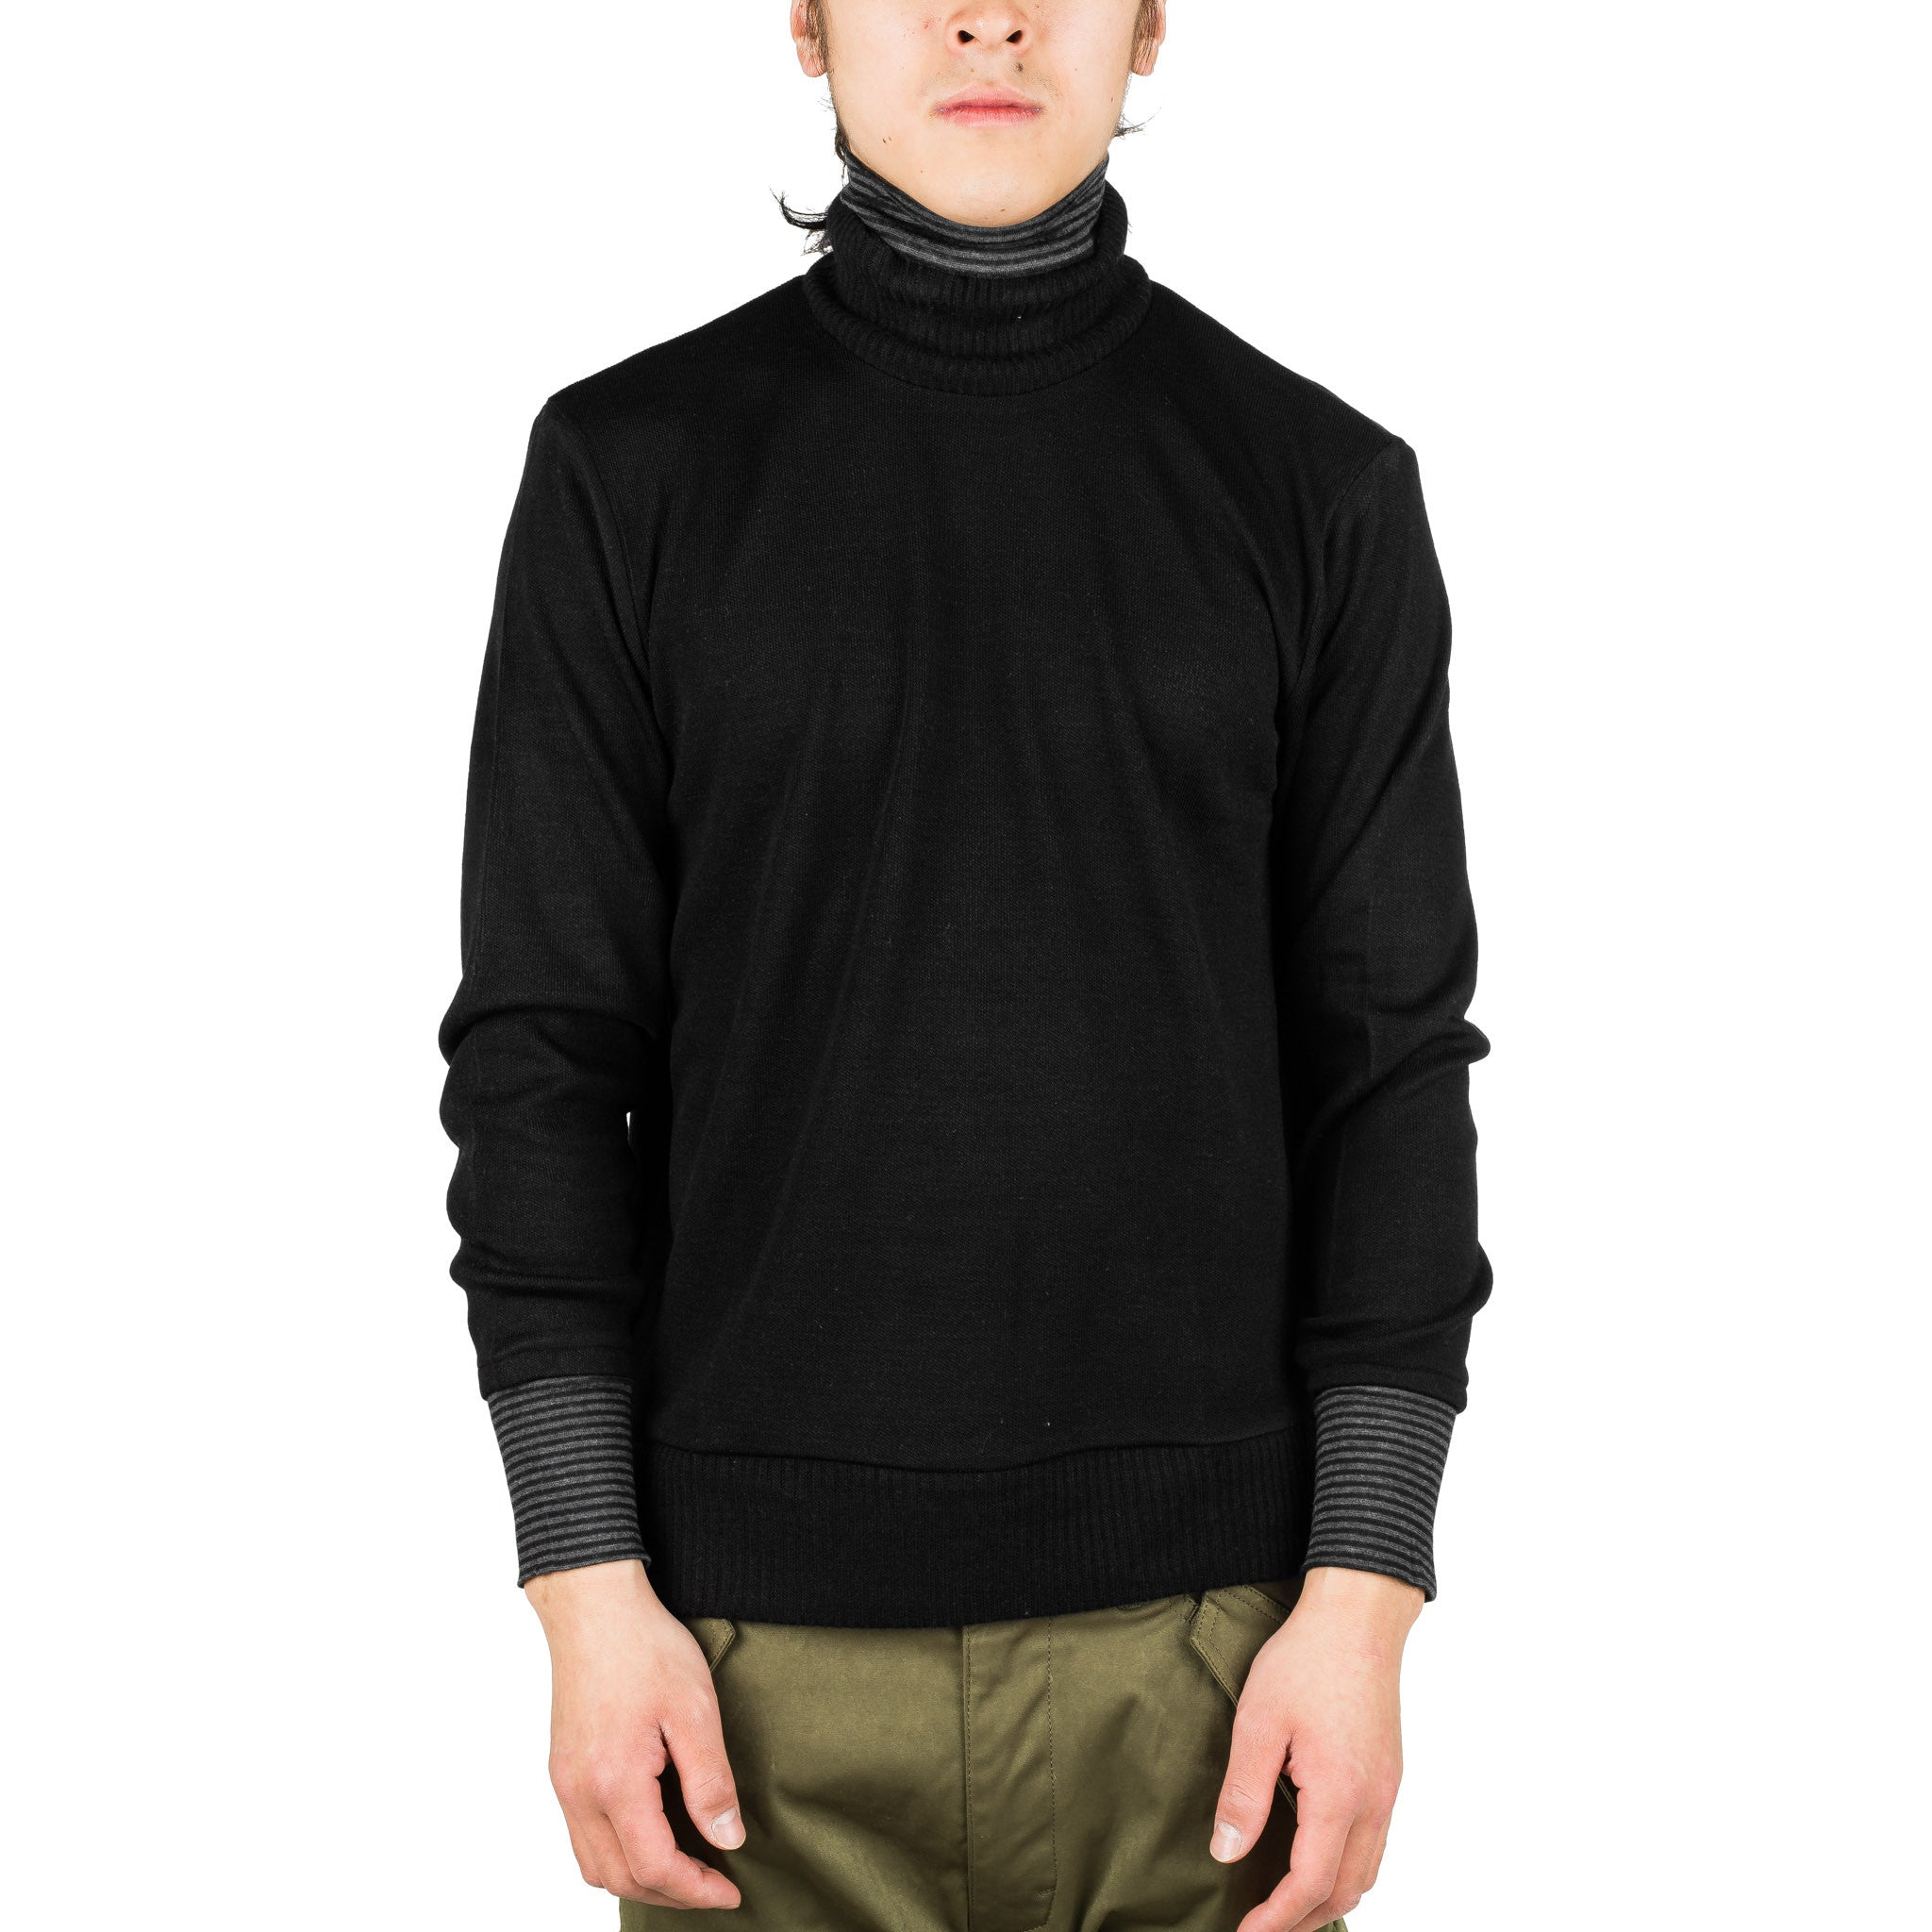 WL-C-17 W Turtleneck Black